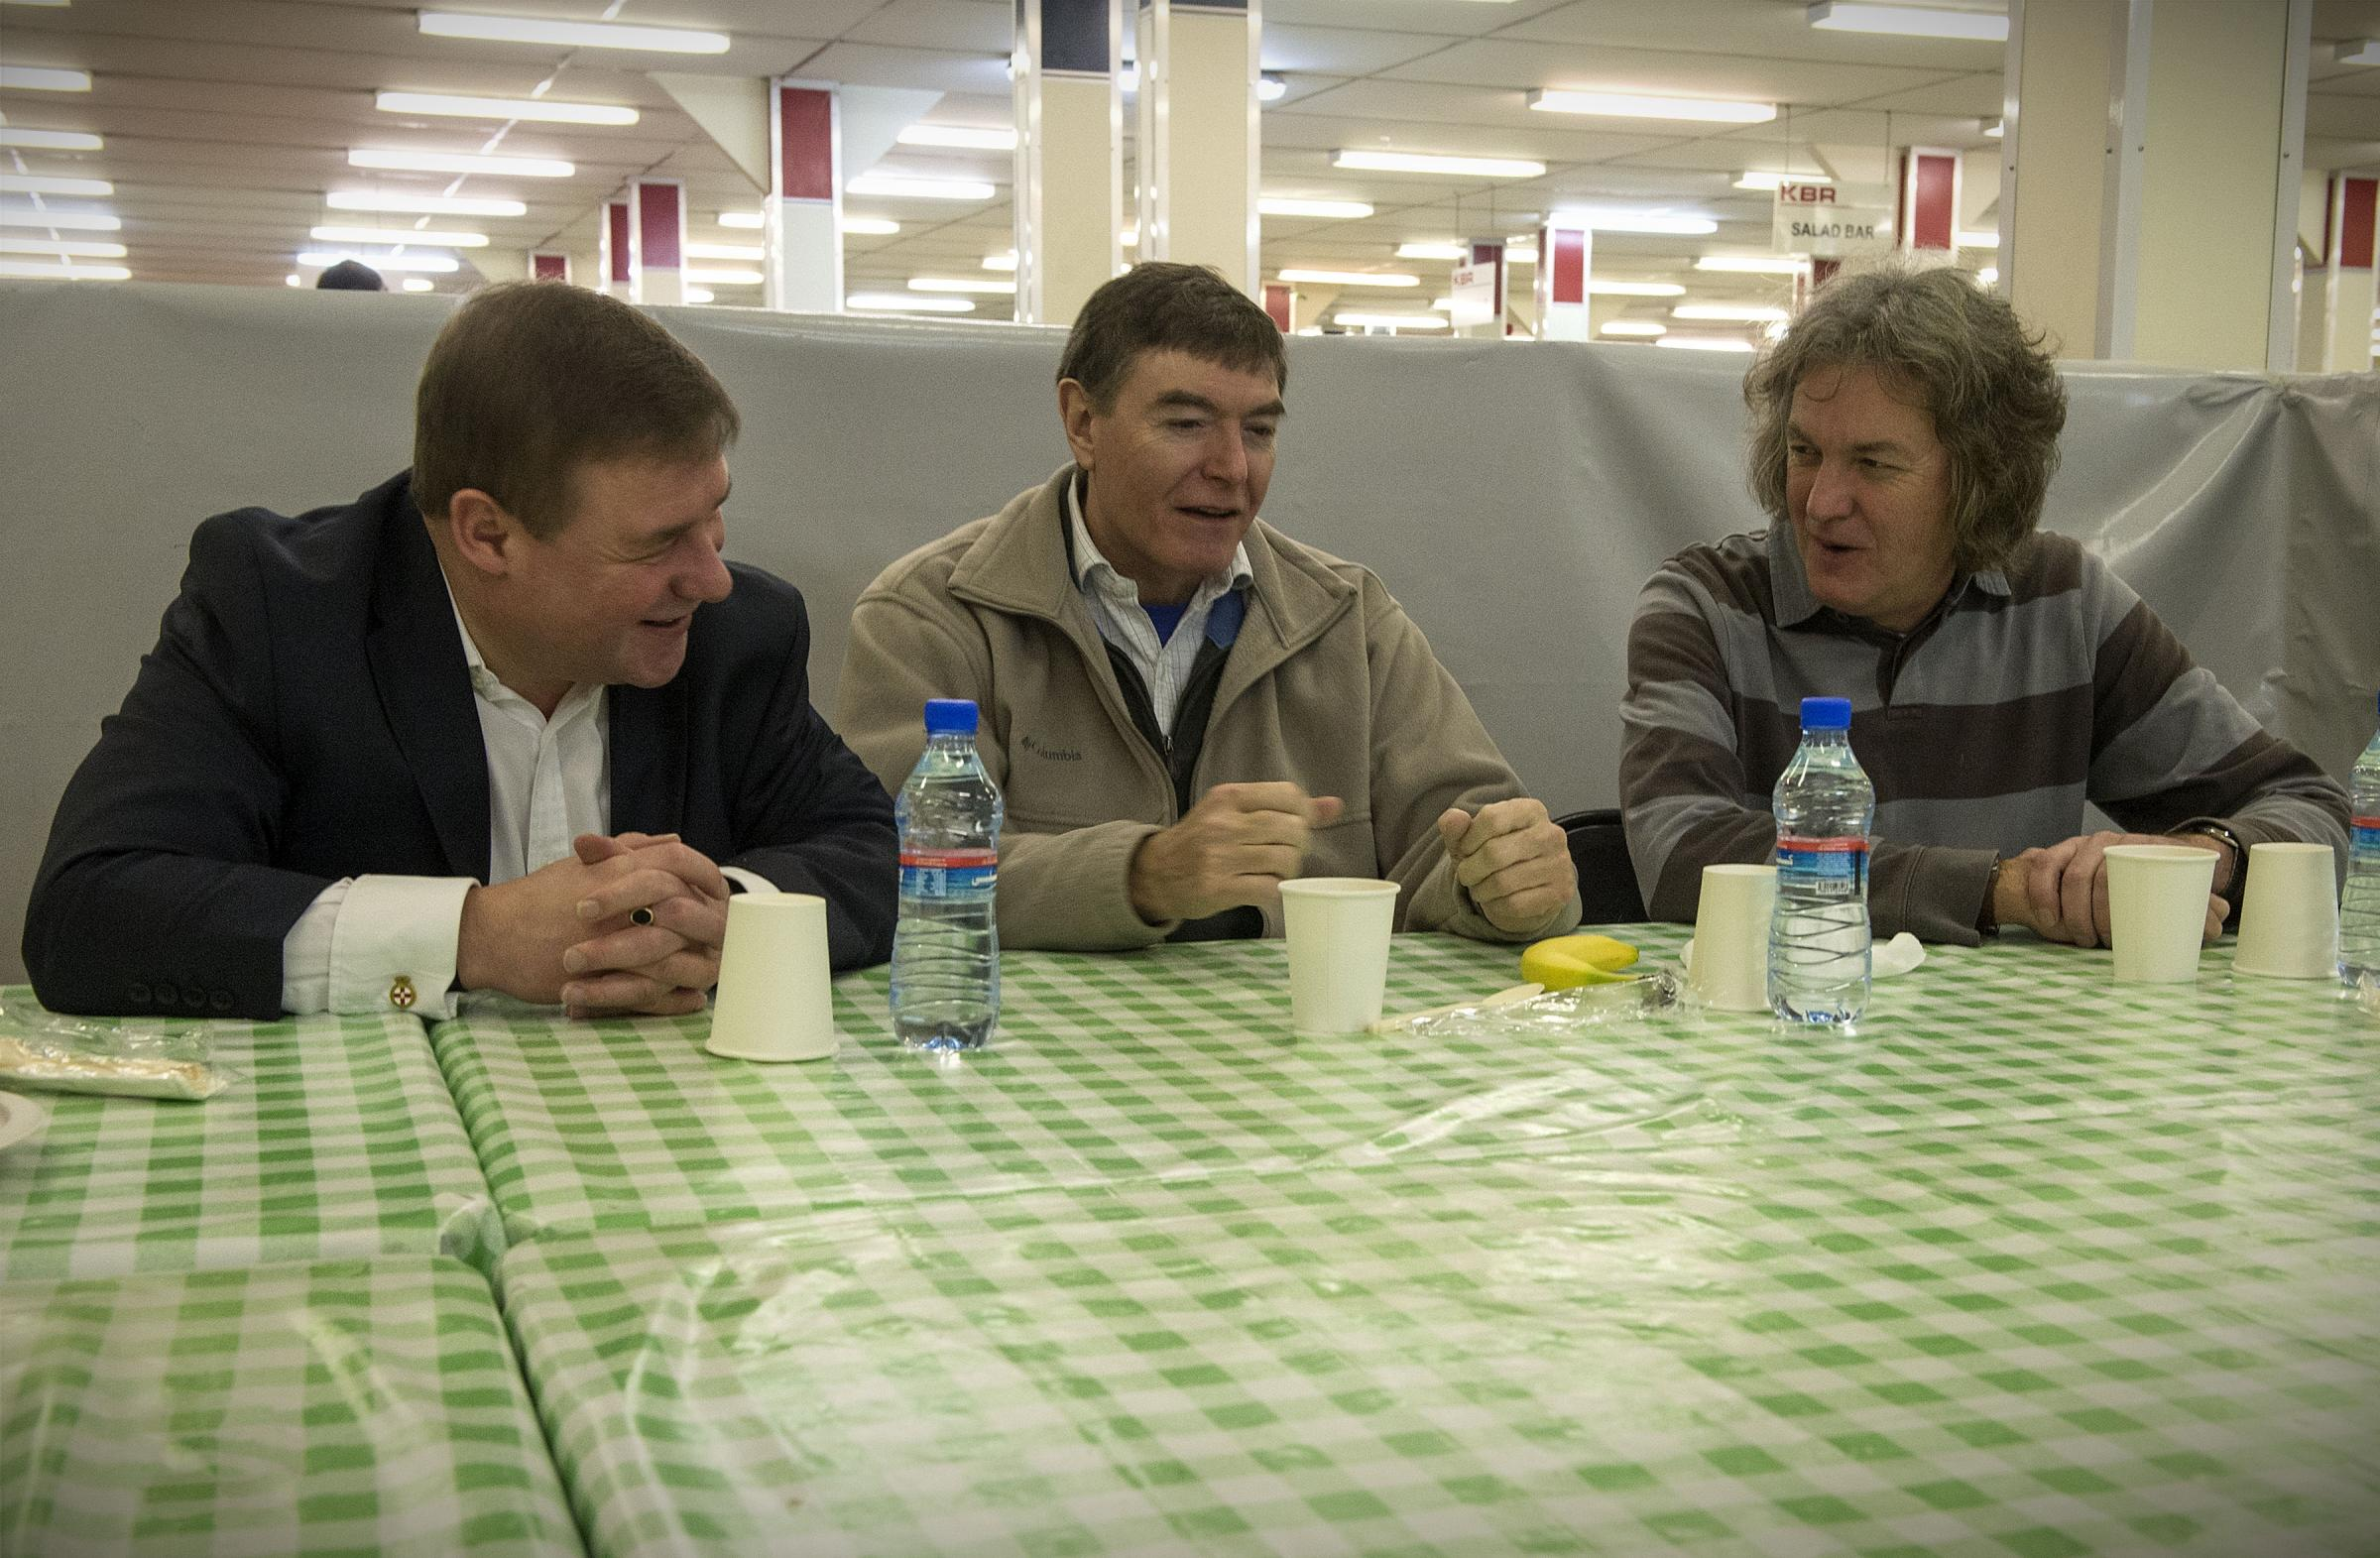 Mark Francois MP bumps into Top Gear presenter James May while on visit to Afghanistan